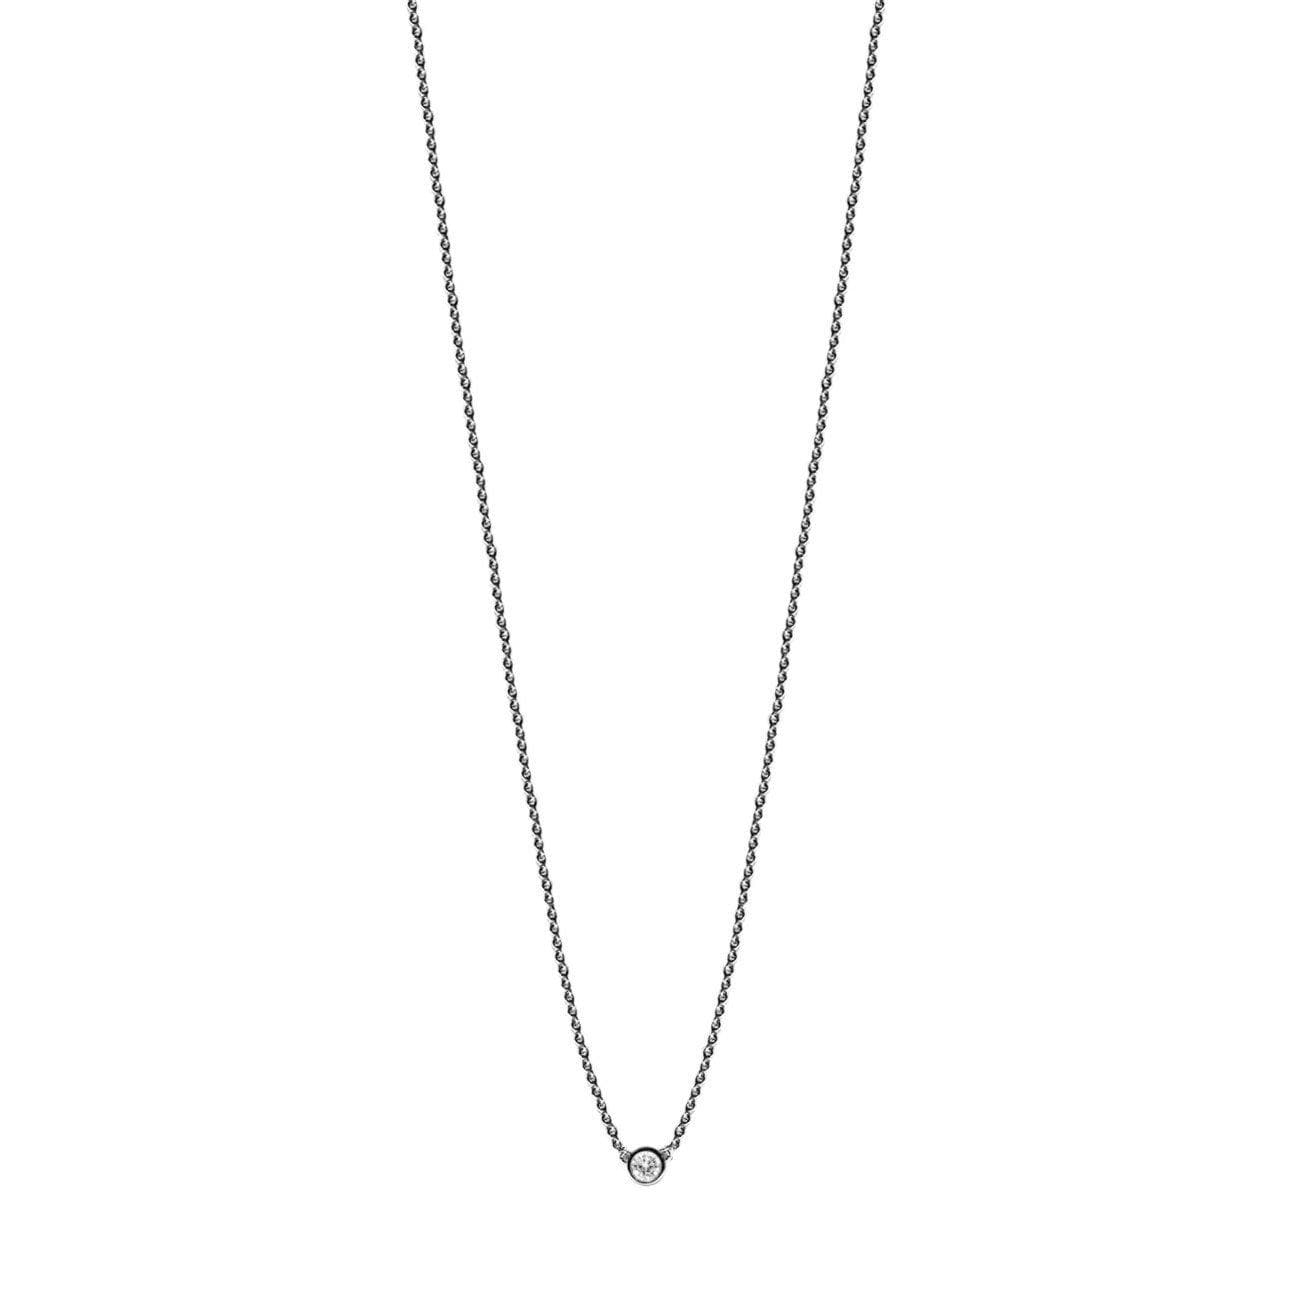 "16-18"" Adjustable Necklace with Diamond in 14K White Gold - Maui Divers Jewelry"